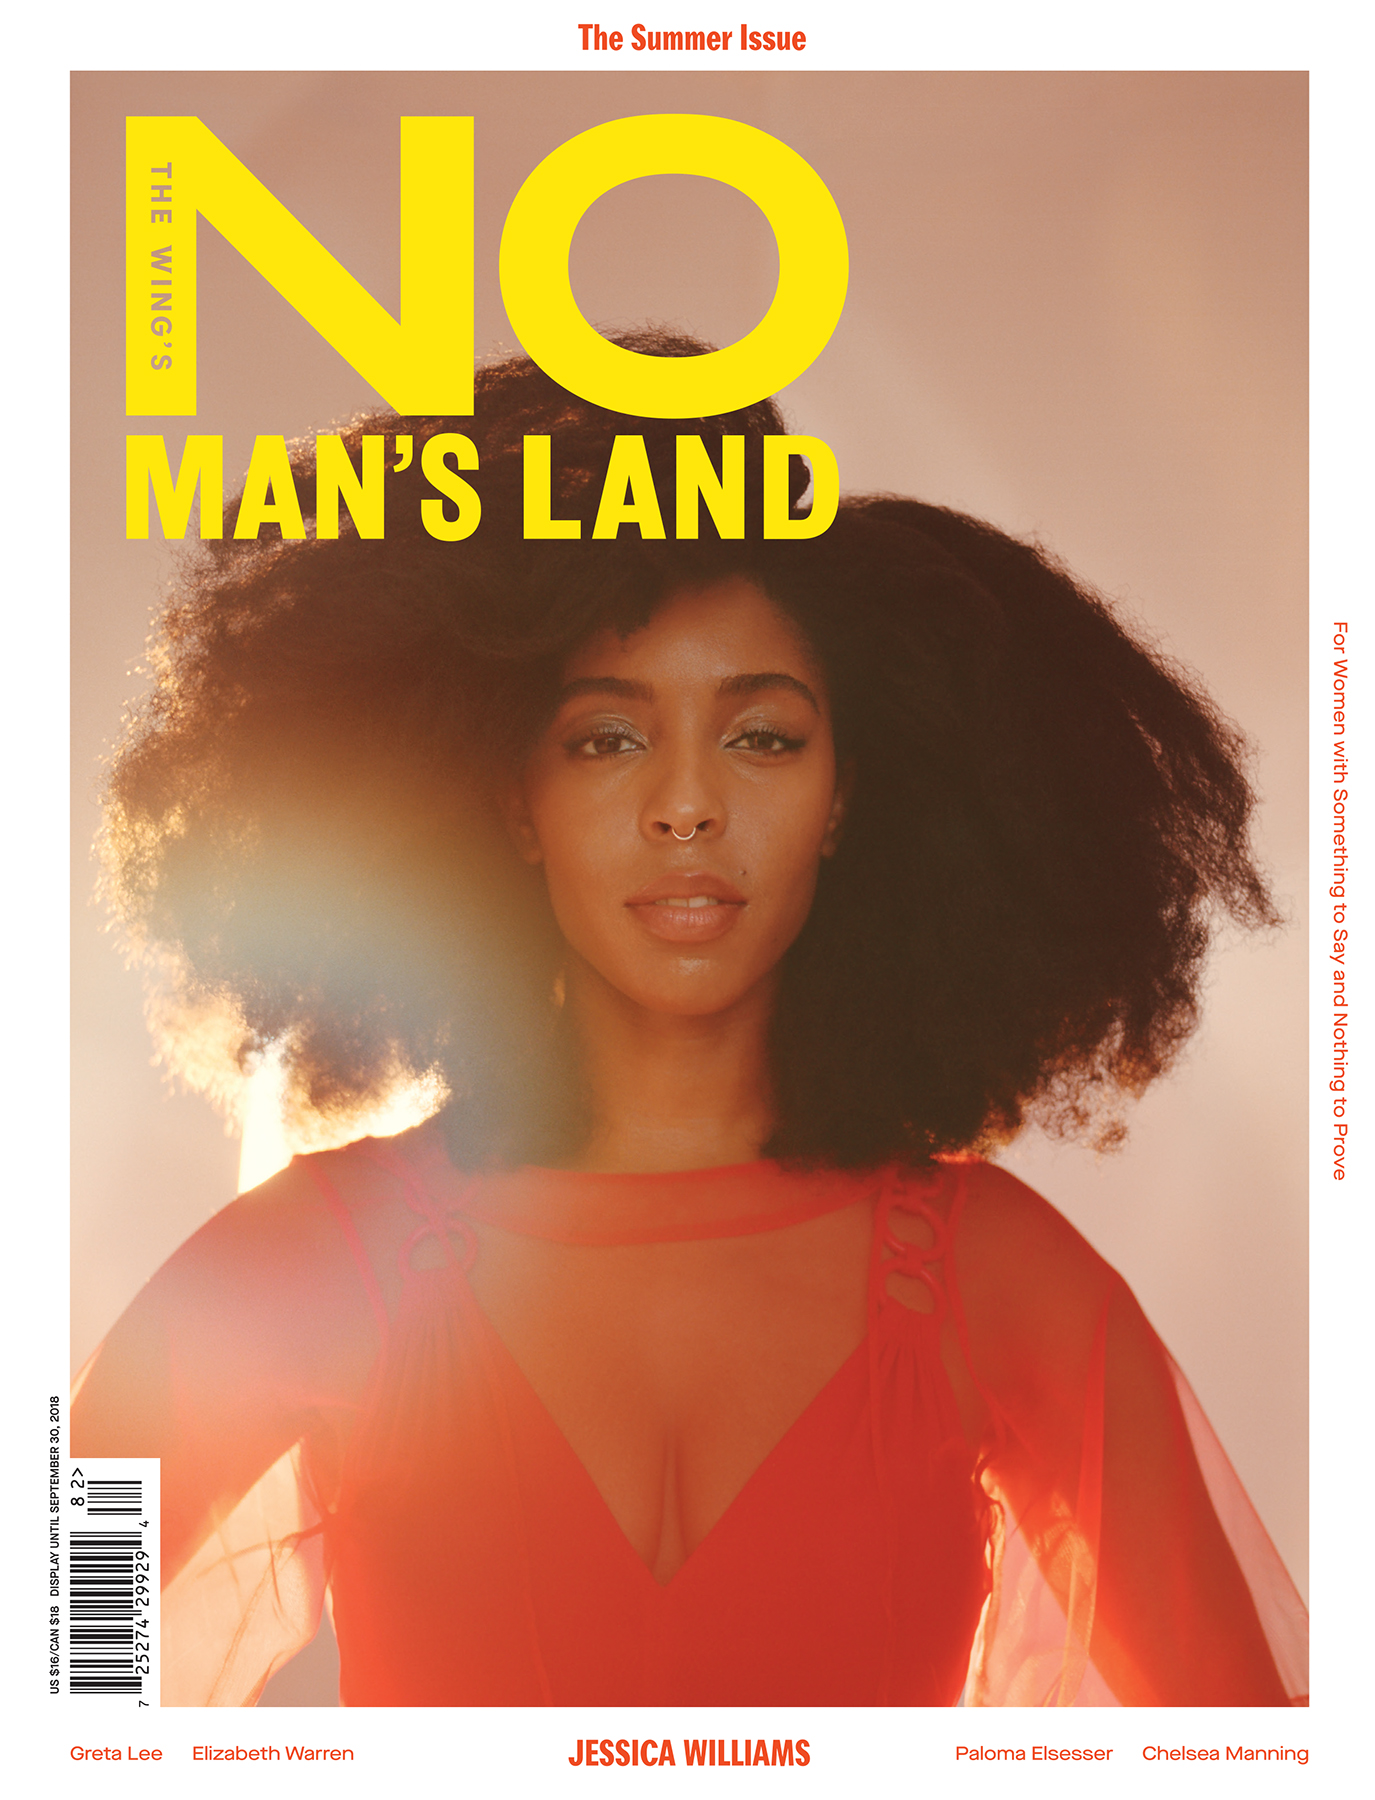 No Man's Land - Summer 2018  Photo Direction by Emily keegin  Photographer: Carlota Guerrero  Fashion: Shibon Kennedy  Production: Alis Atwell  Design: Pentagram